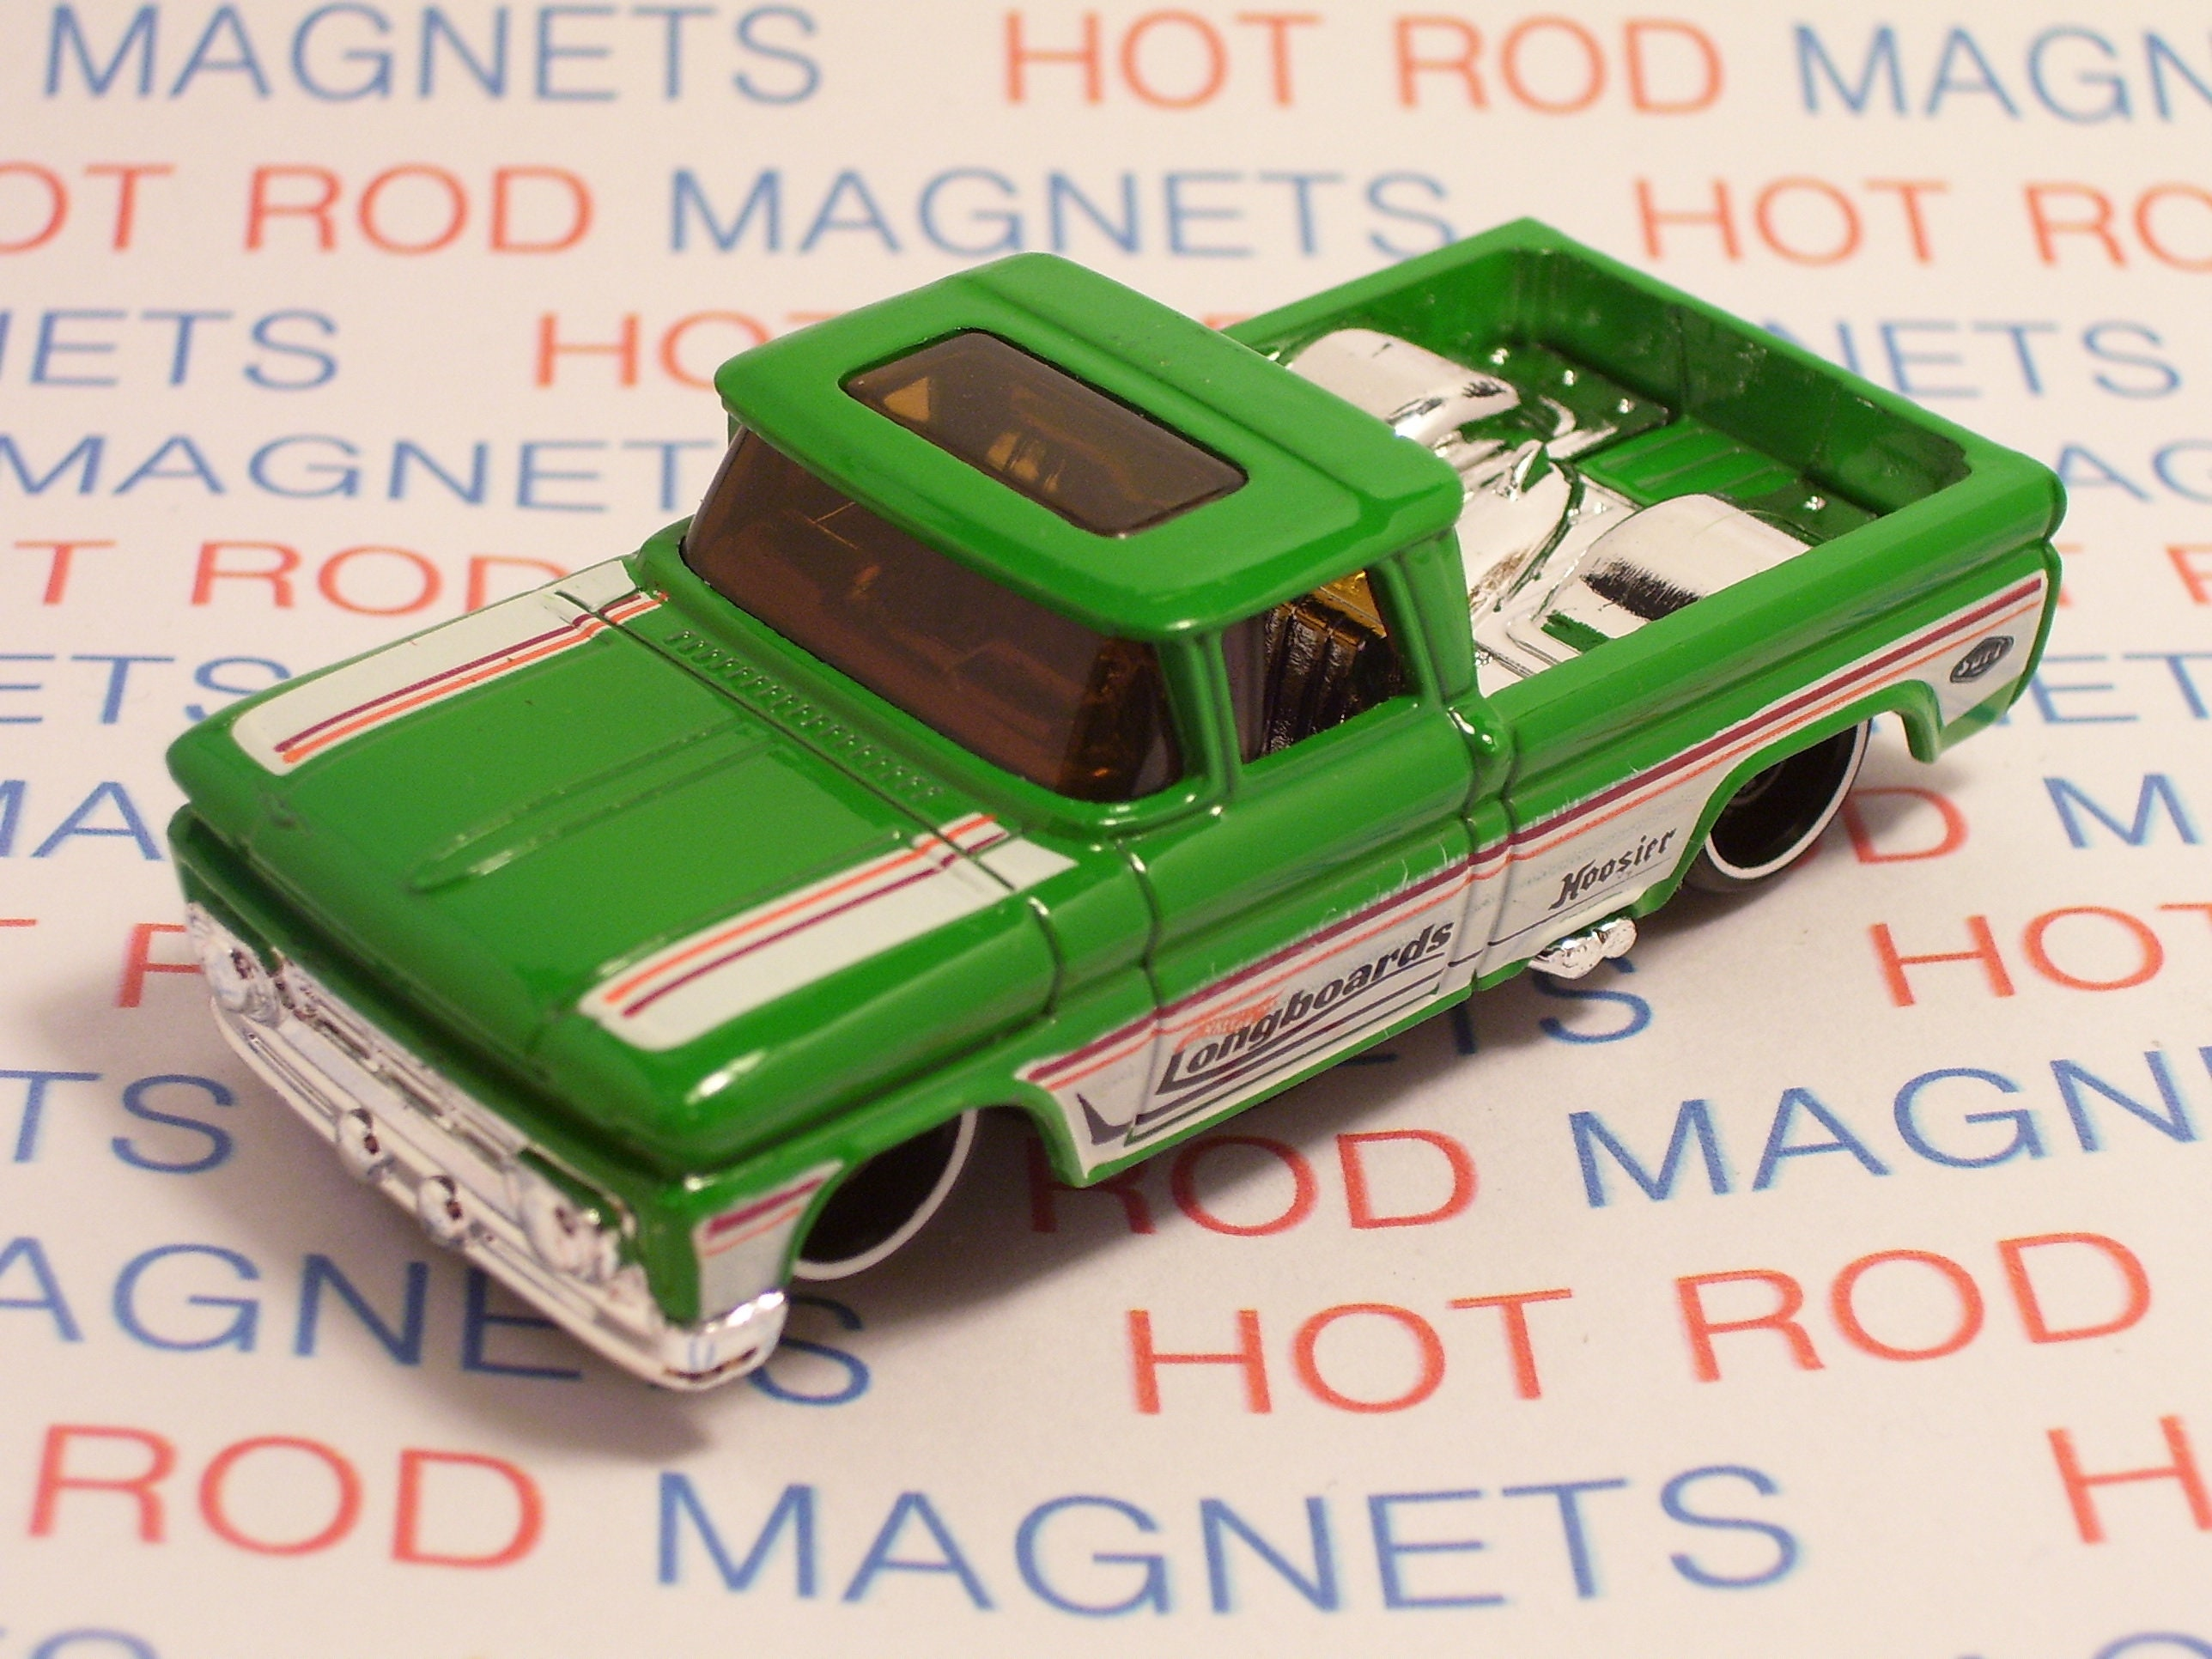 1962 Chevrolet Pickup Truck Hot Rod Man Cave Refrigerator